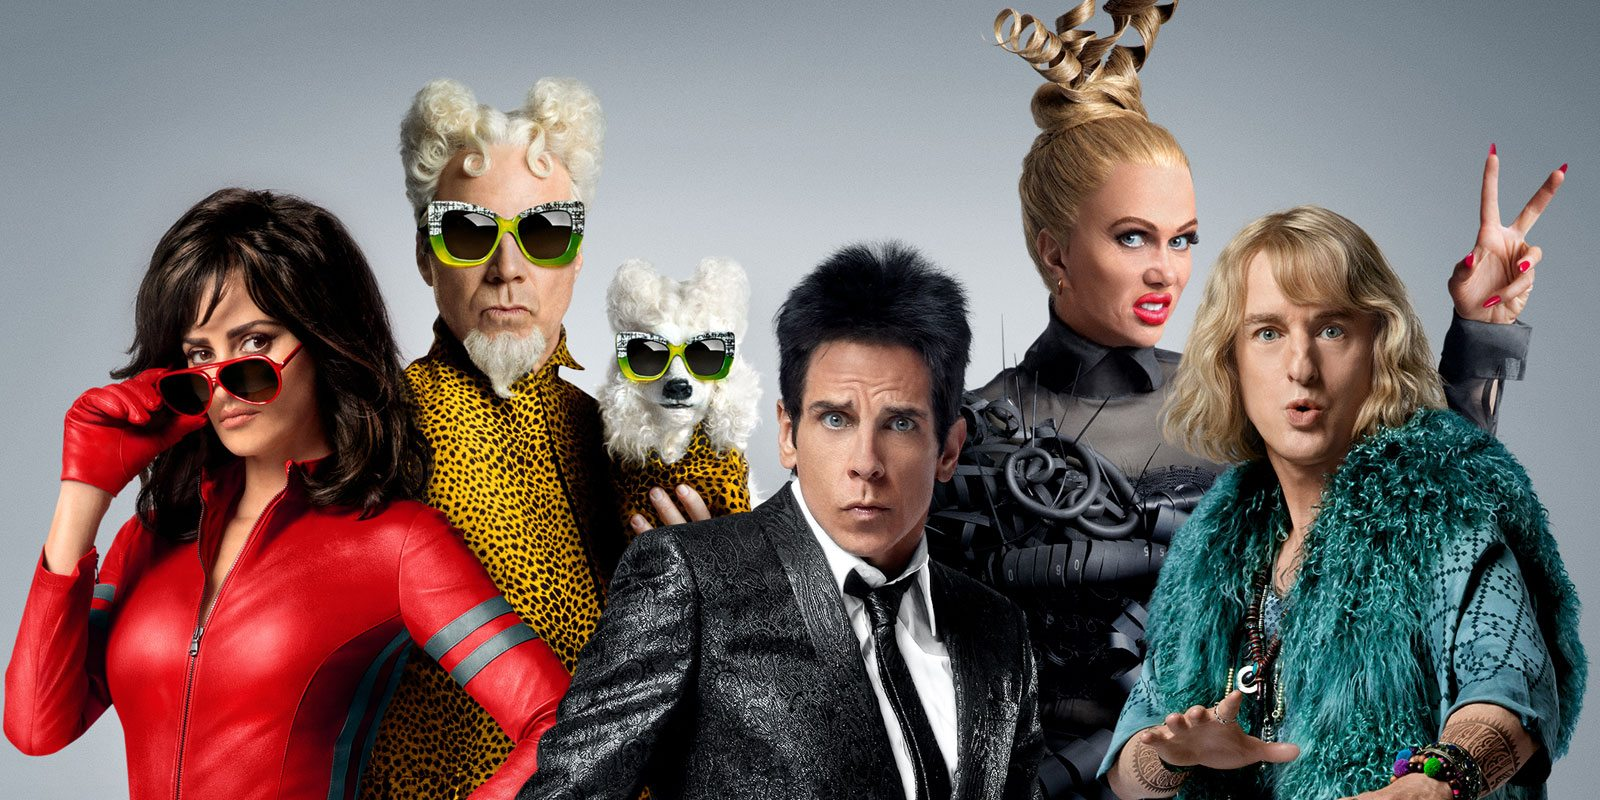 8 Things Parents Should Know About 'Zoolander 2'